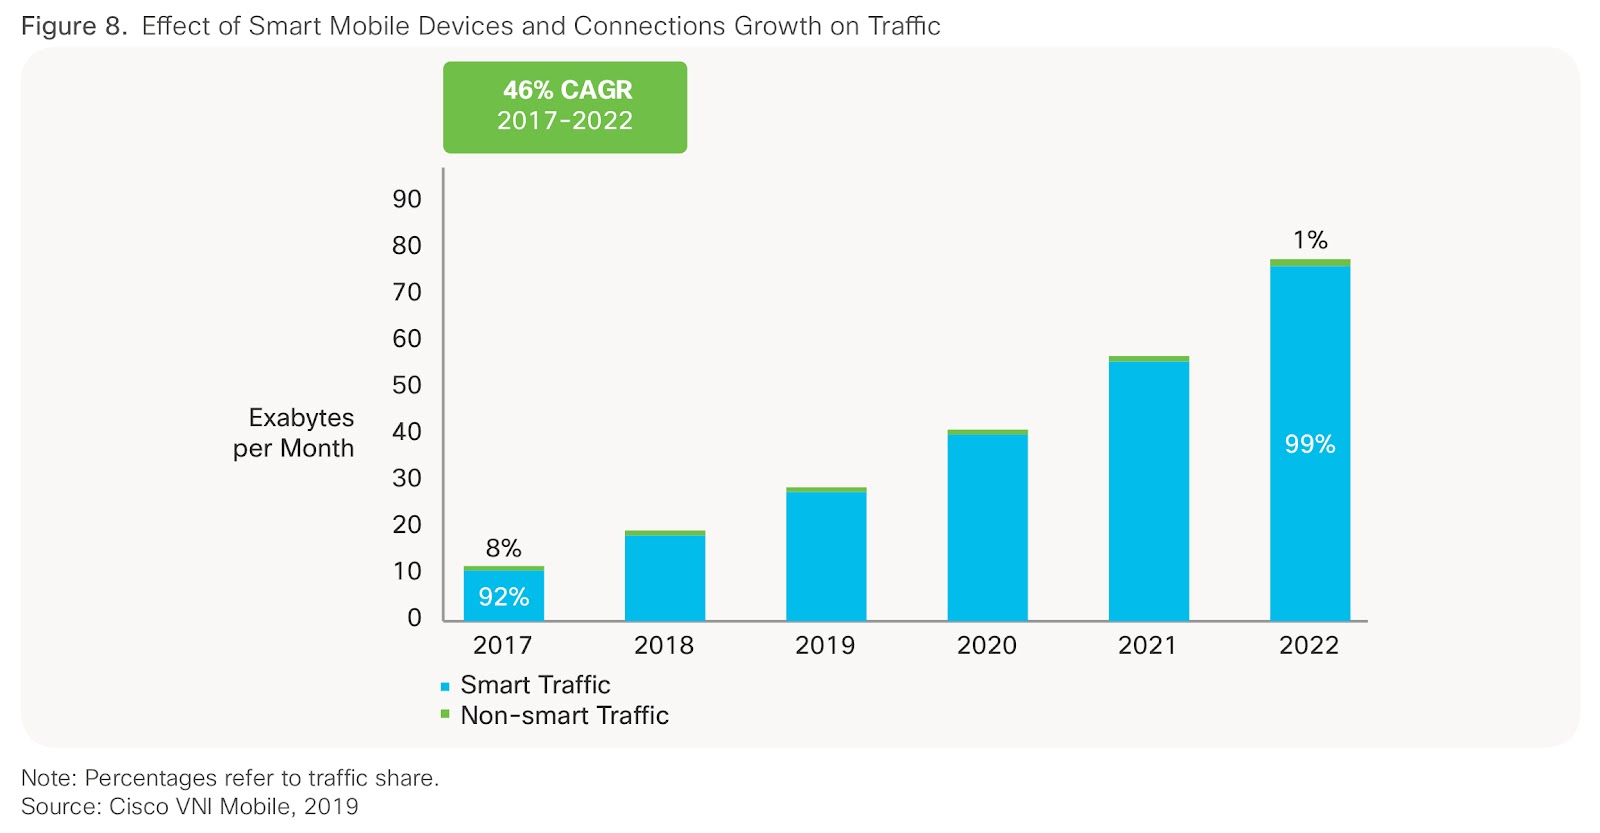 Video consumption to increase dramatically, with mobile